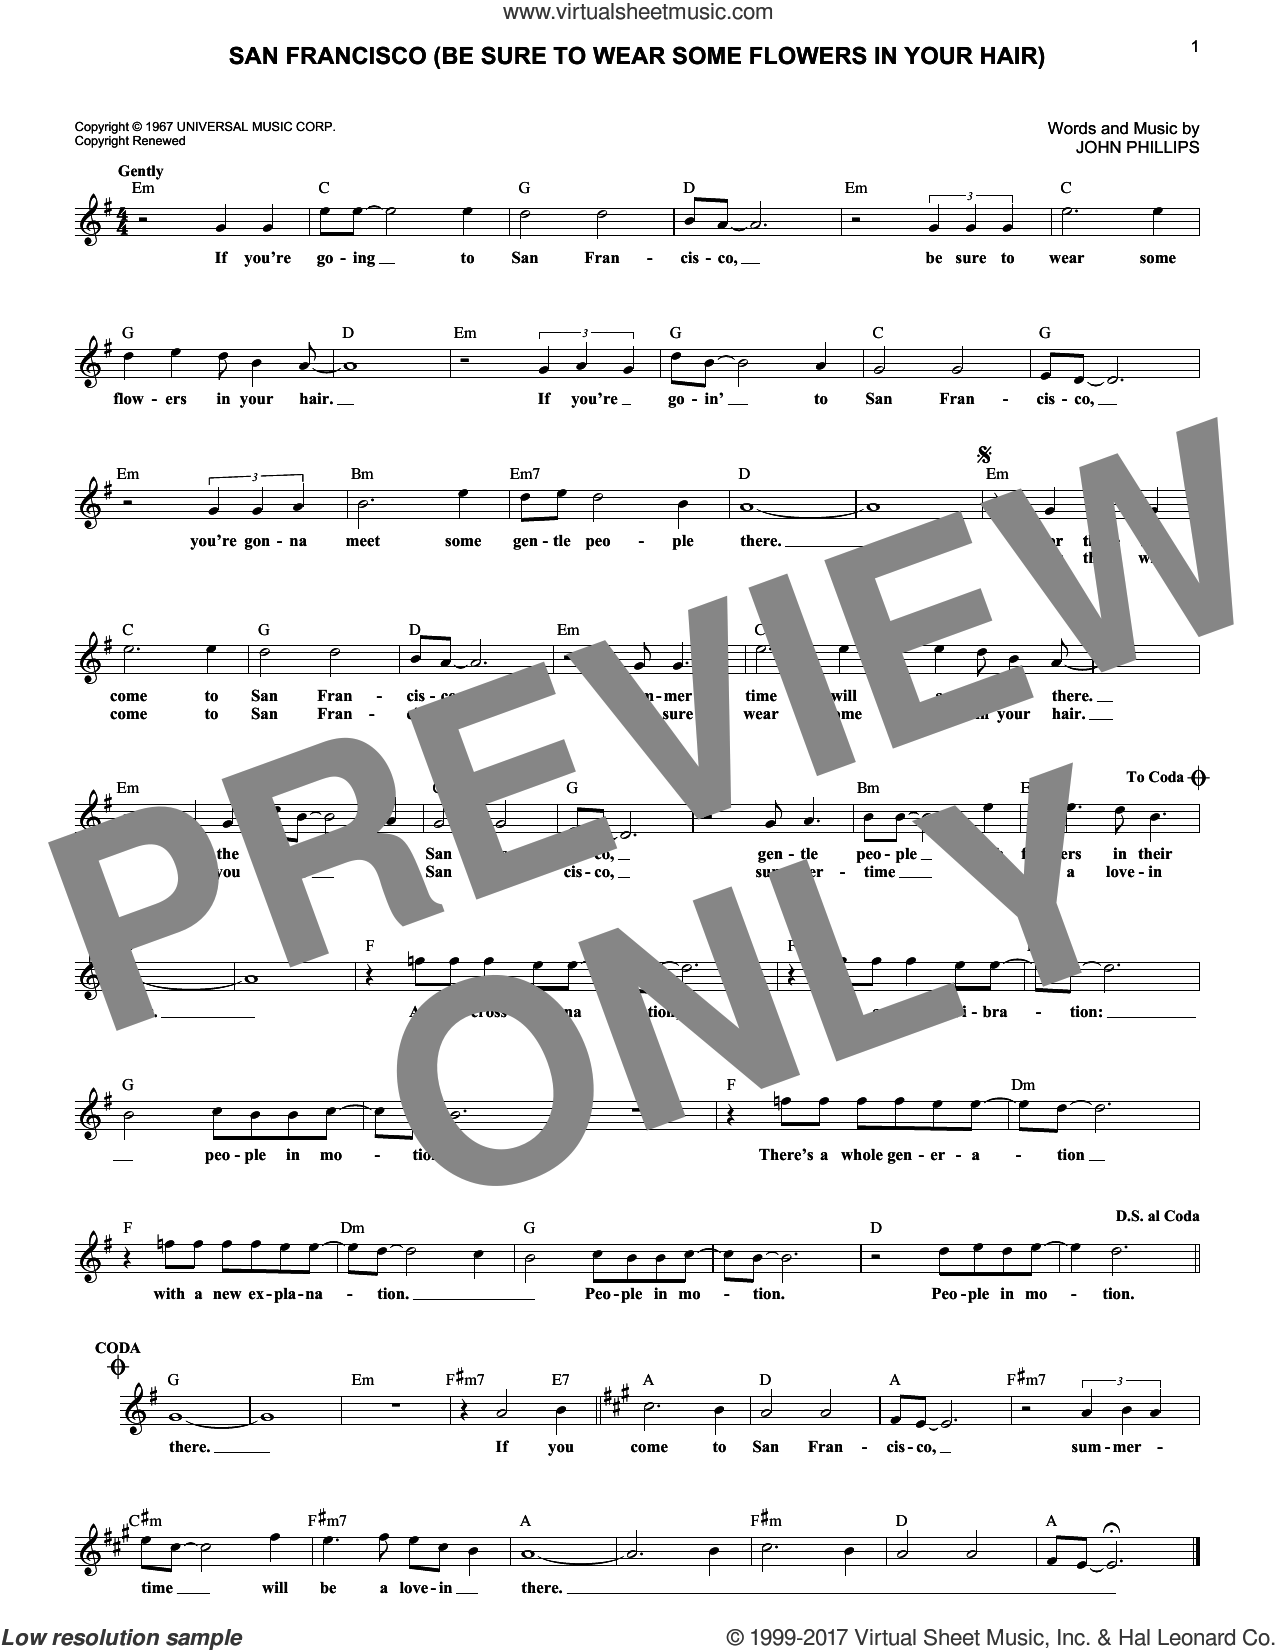 San Francisco (Be Sure To Wear Some Flowers In Your Hair) sheet music for voice and other instruments (fake book) by Scott McKenzie and John Phillips, intermediate skill level